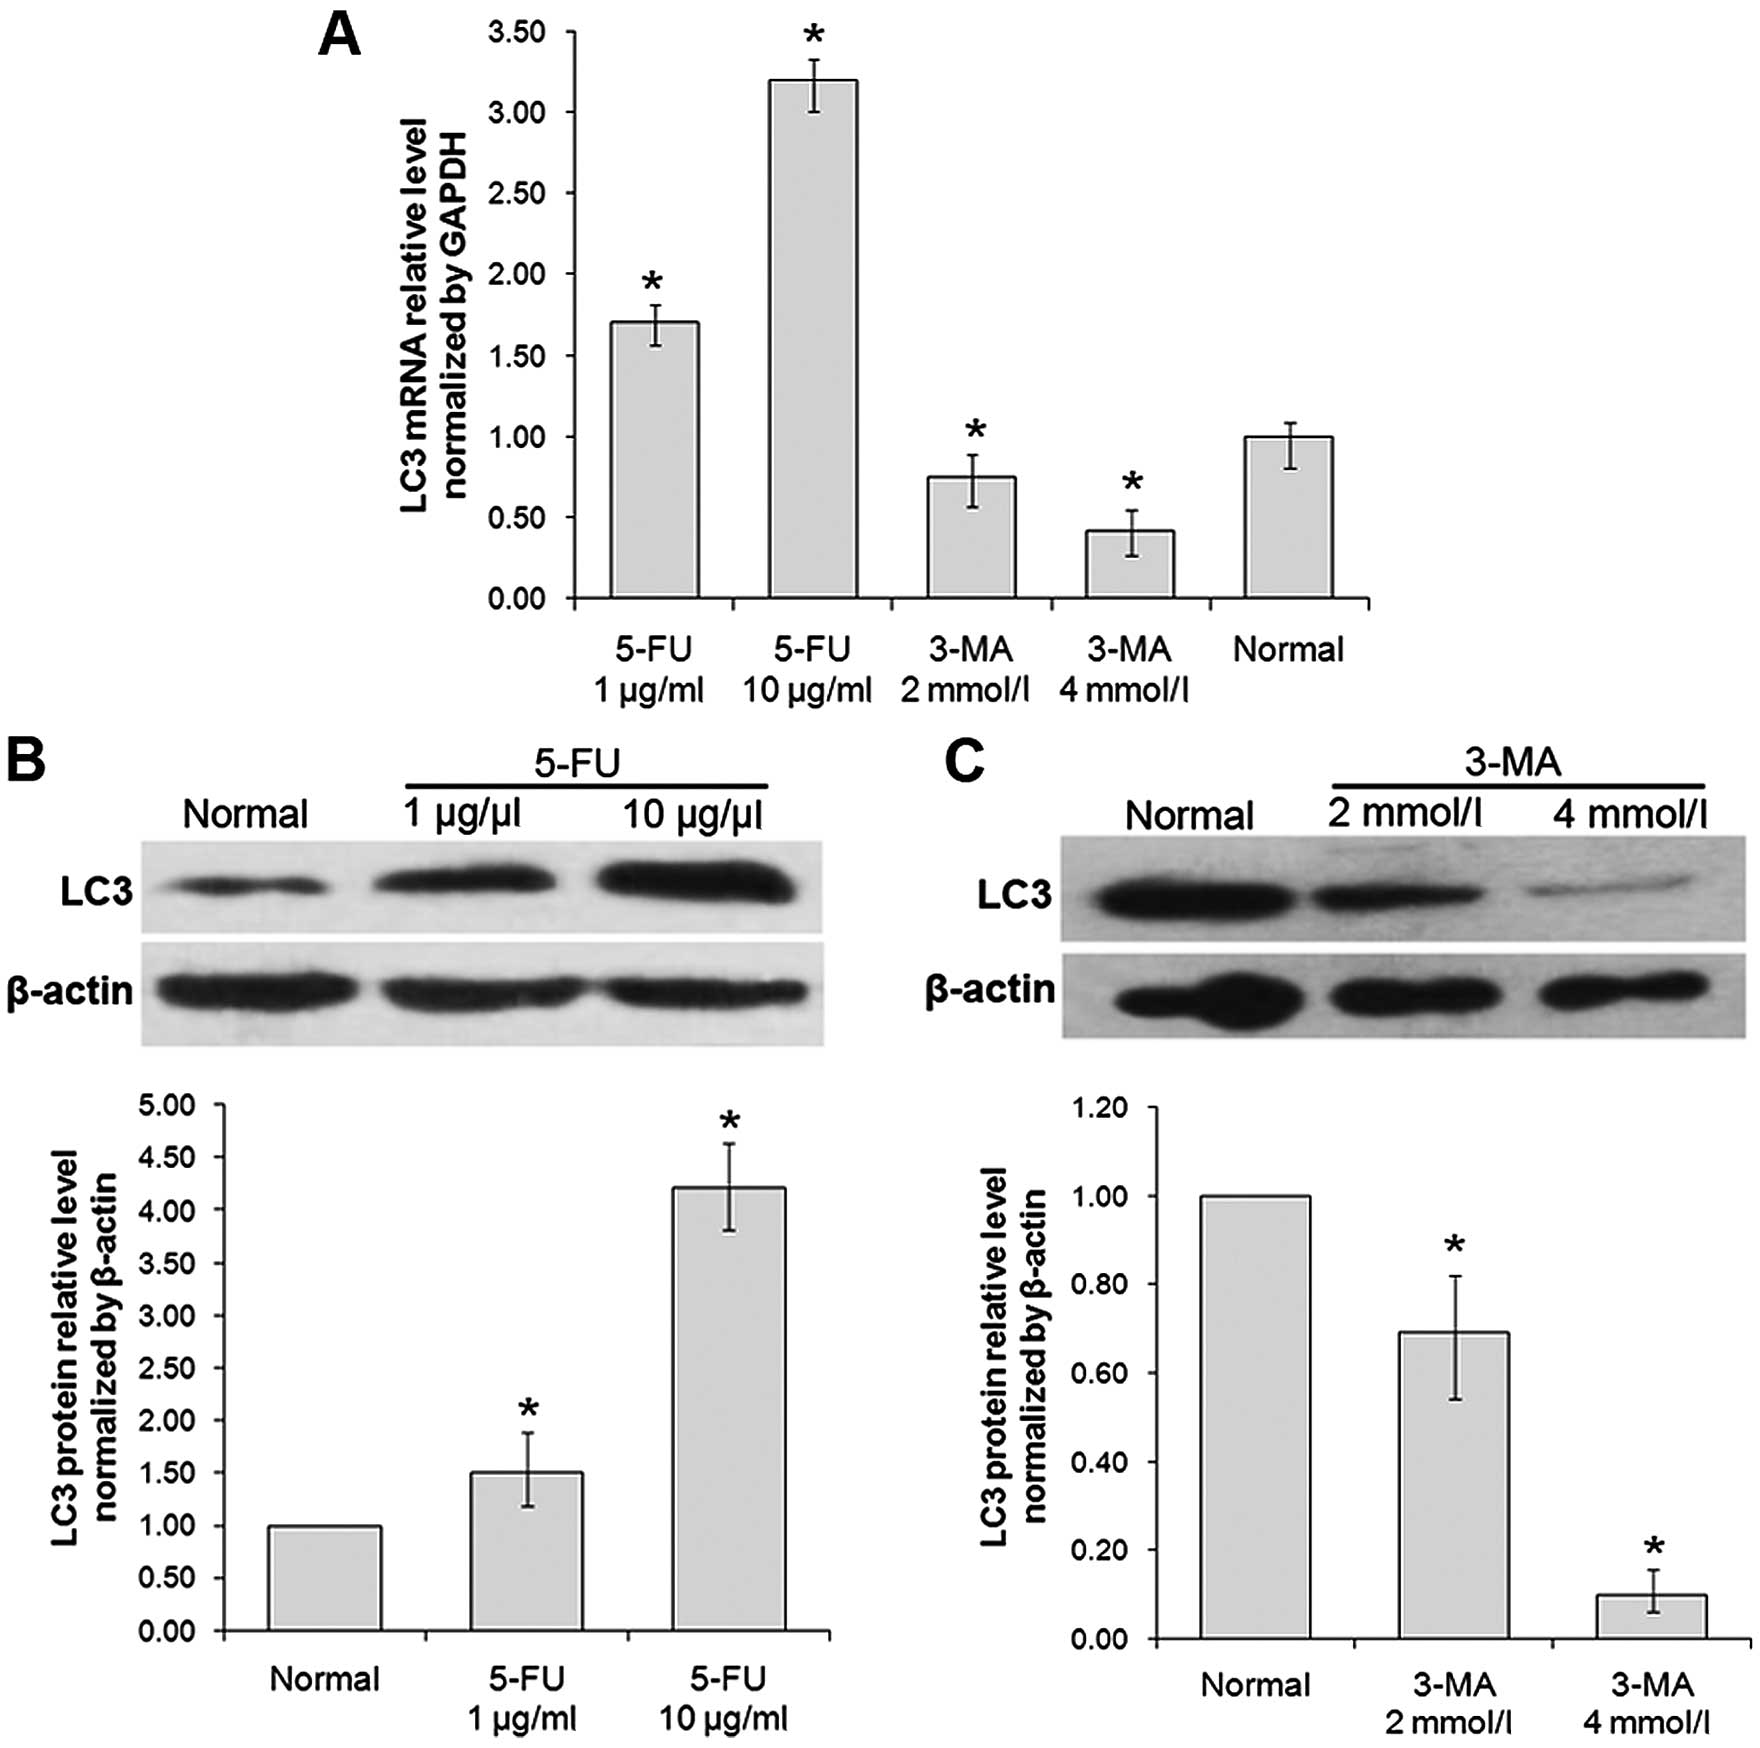 Autophagy in human skin squamous cell carcinoma: Inhibition by 3-MA